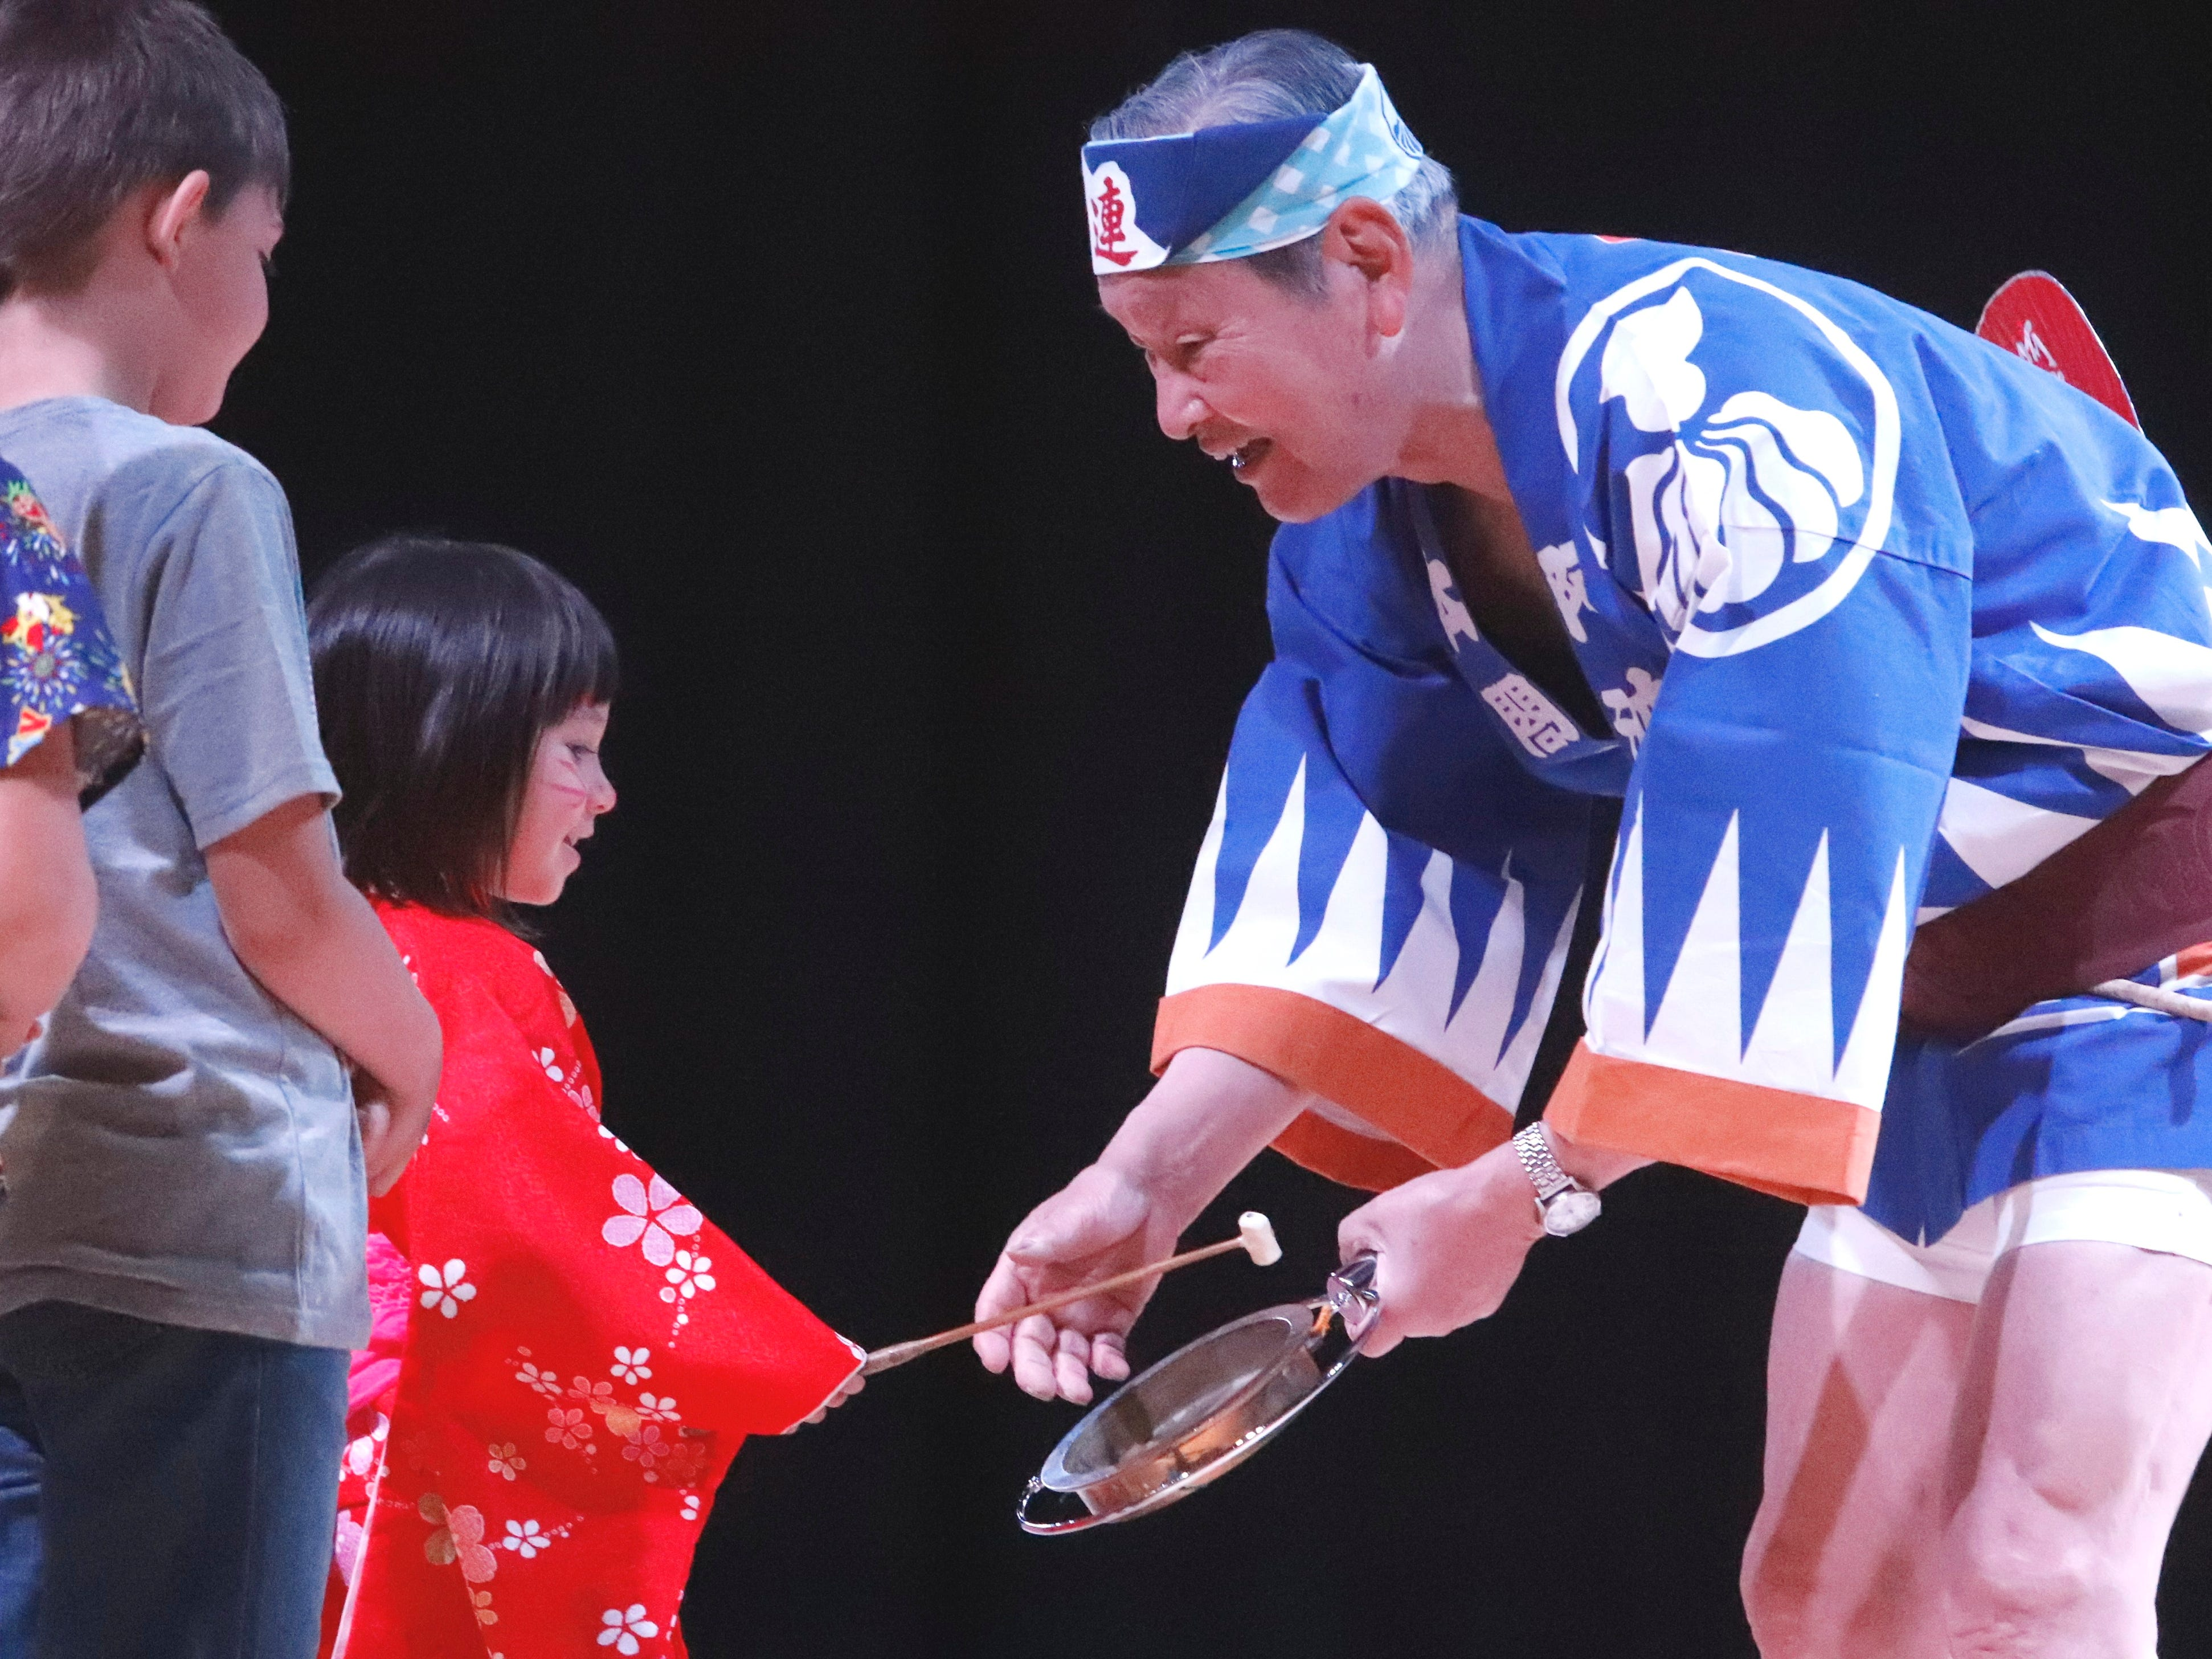 An Owa-Odori performer lets a child play  the kane (small gong) on stage Saturday, April 27, 2019, during 2019 Cherry Blossom Festival at Sequoia Middle School in Redding.